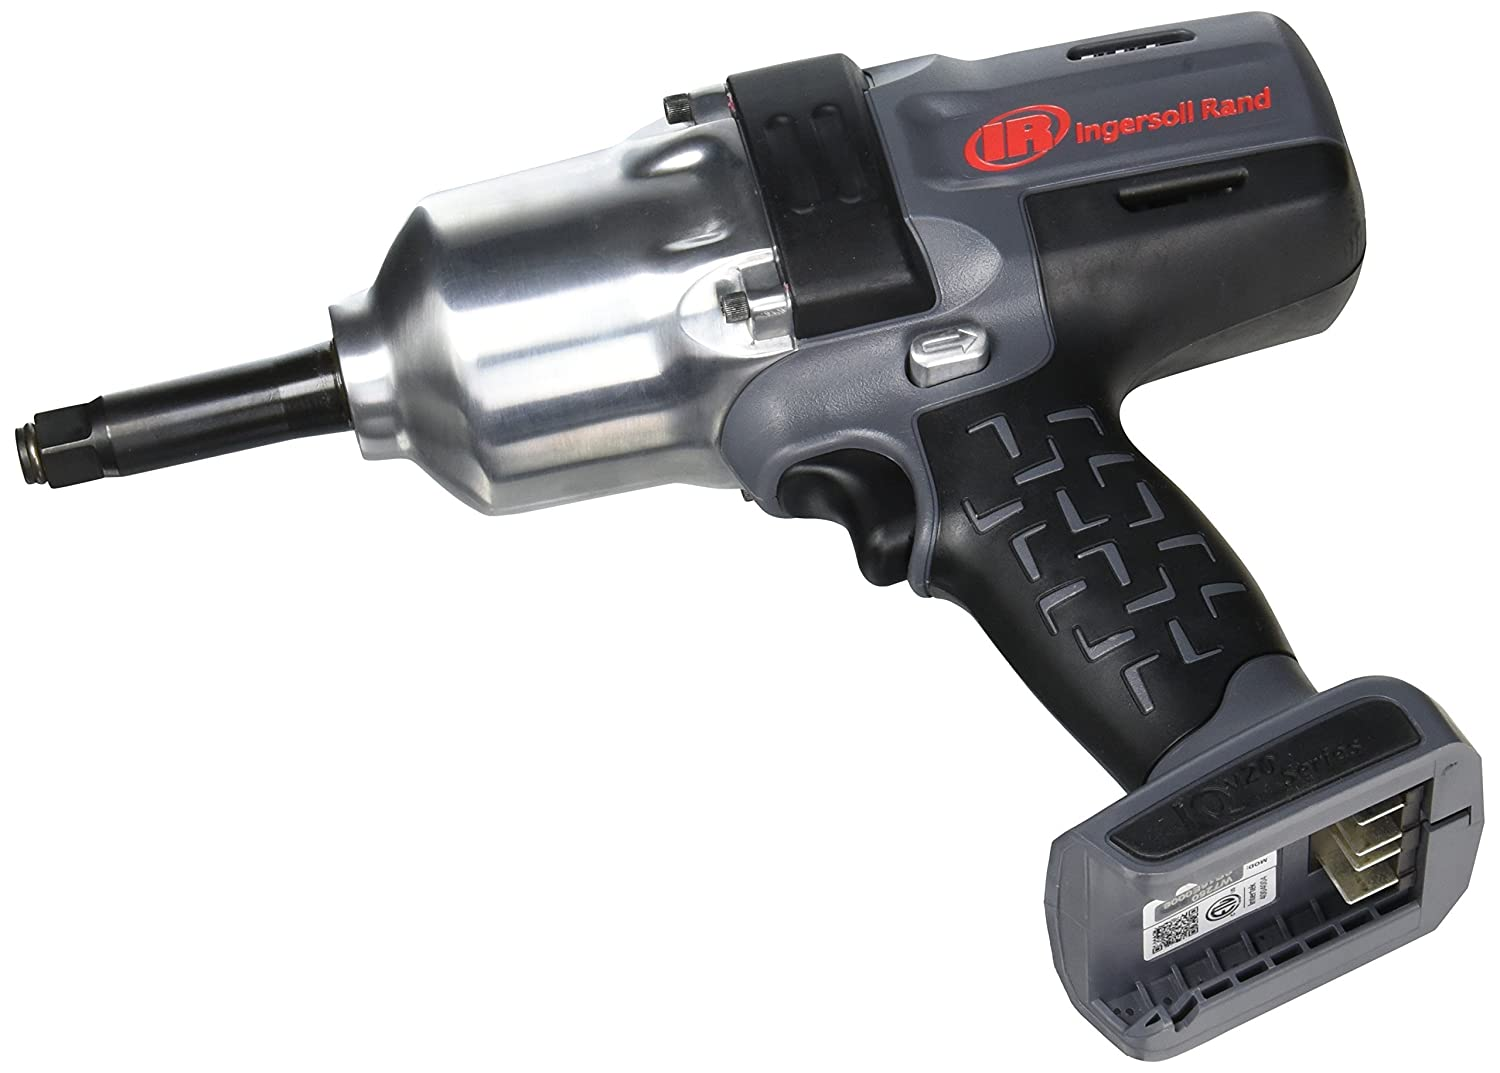 Ingersoll Rand W7250-K1 1/2-Inch High-Torque 2-Inch Extended Anvil Impactool, Charger, 1 Li-ion Battery and Case Kit